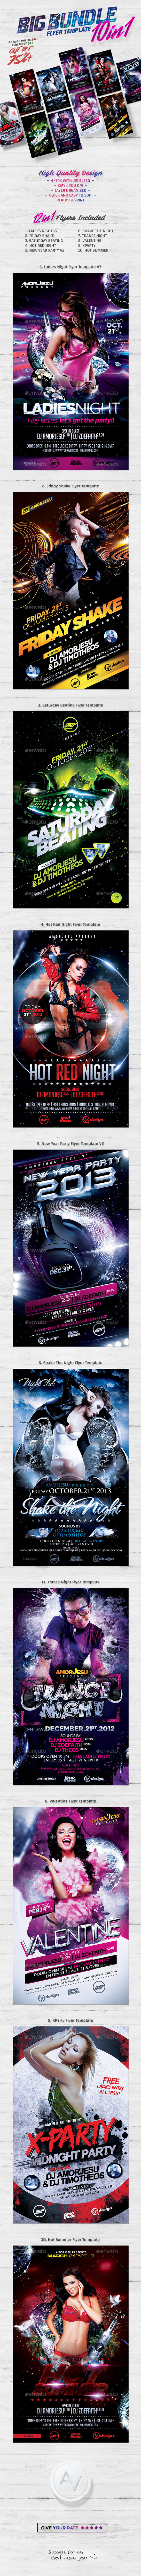 Big Bundle Flyer Template 10in1 - Clubs & Parties Events